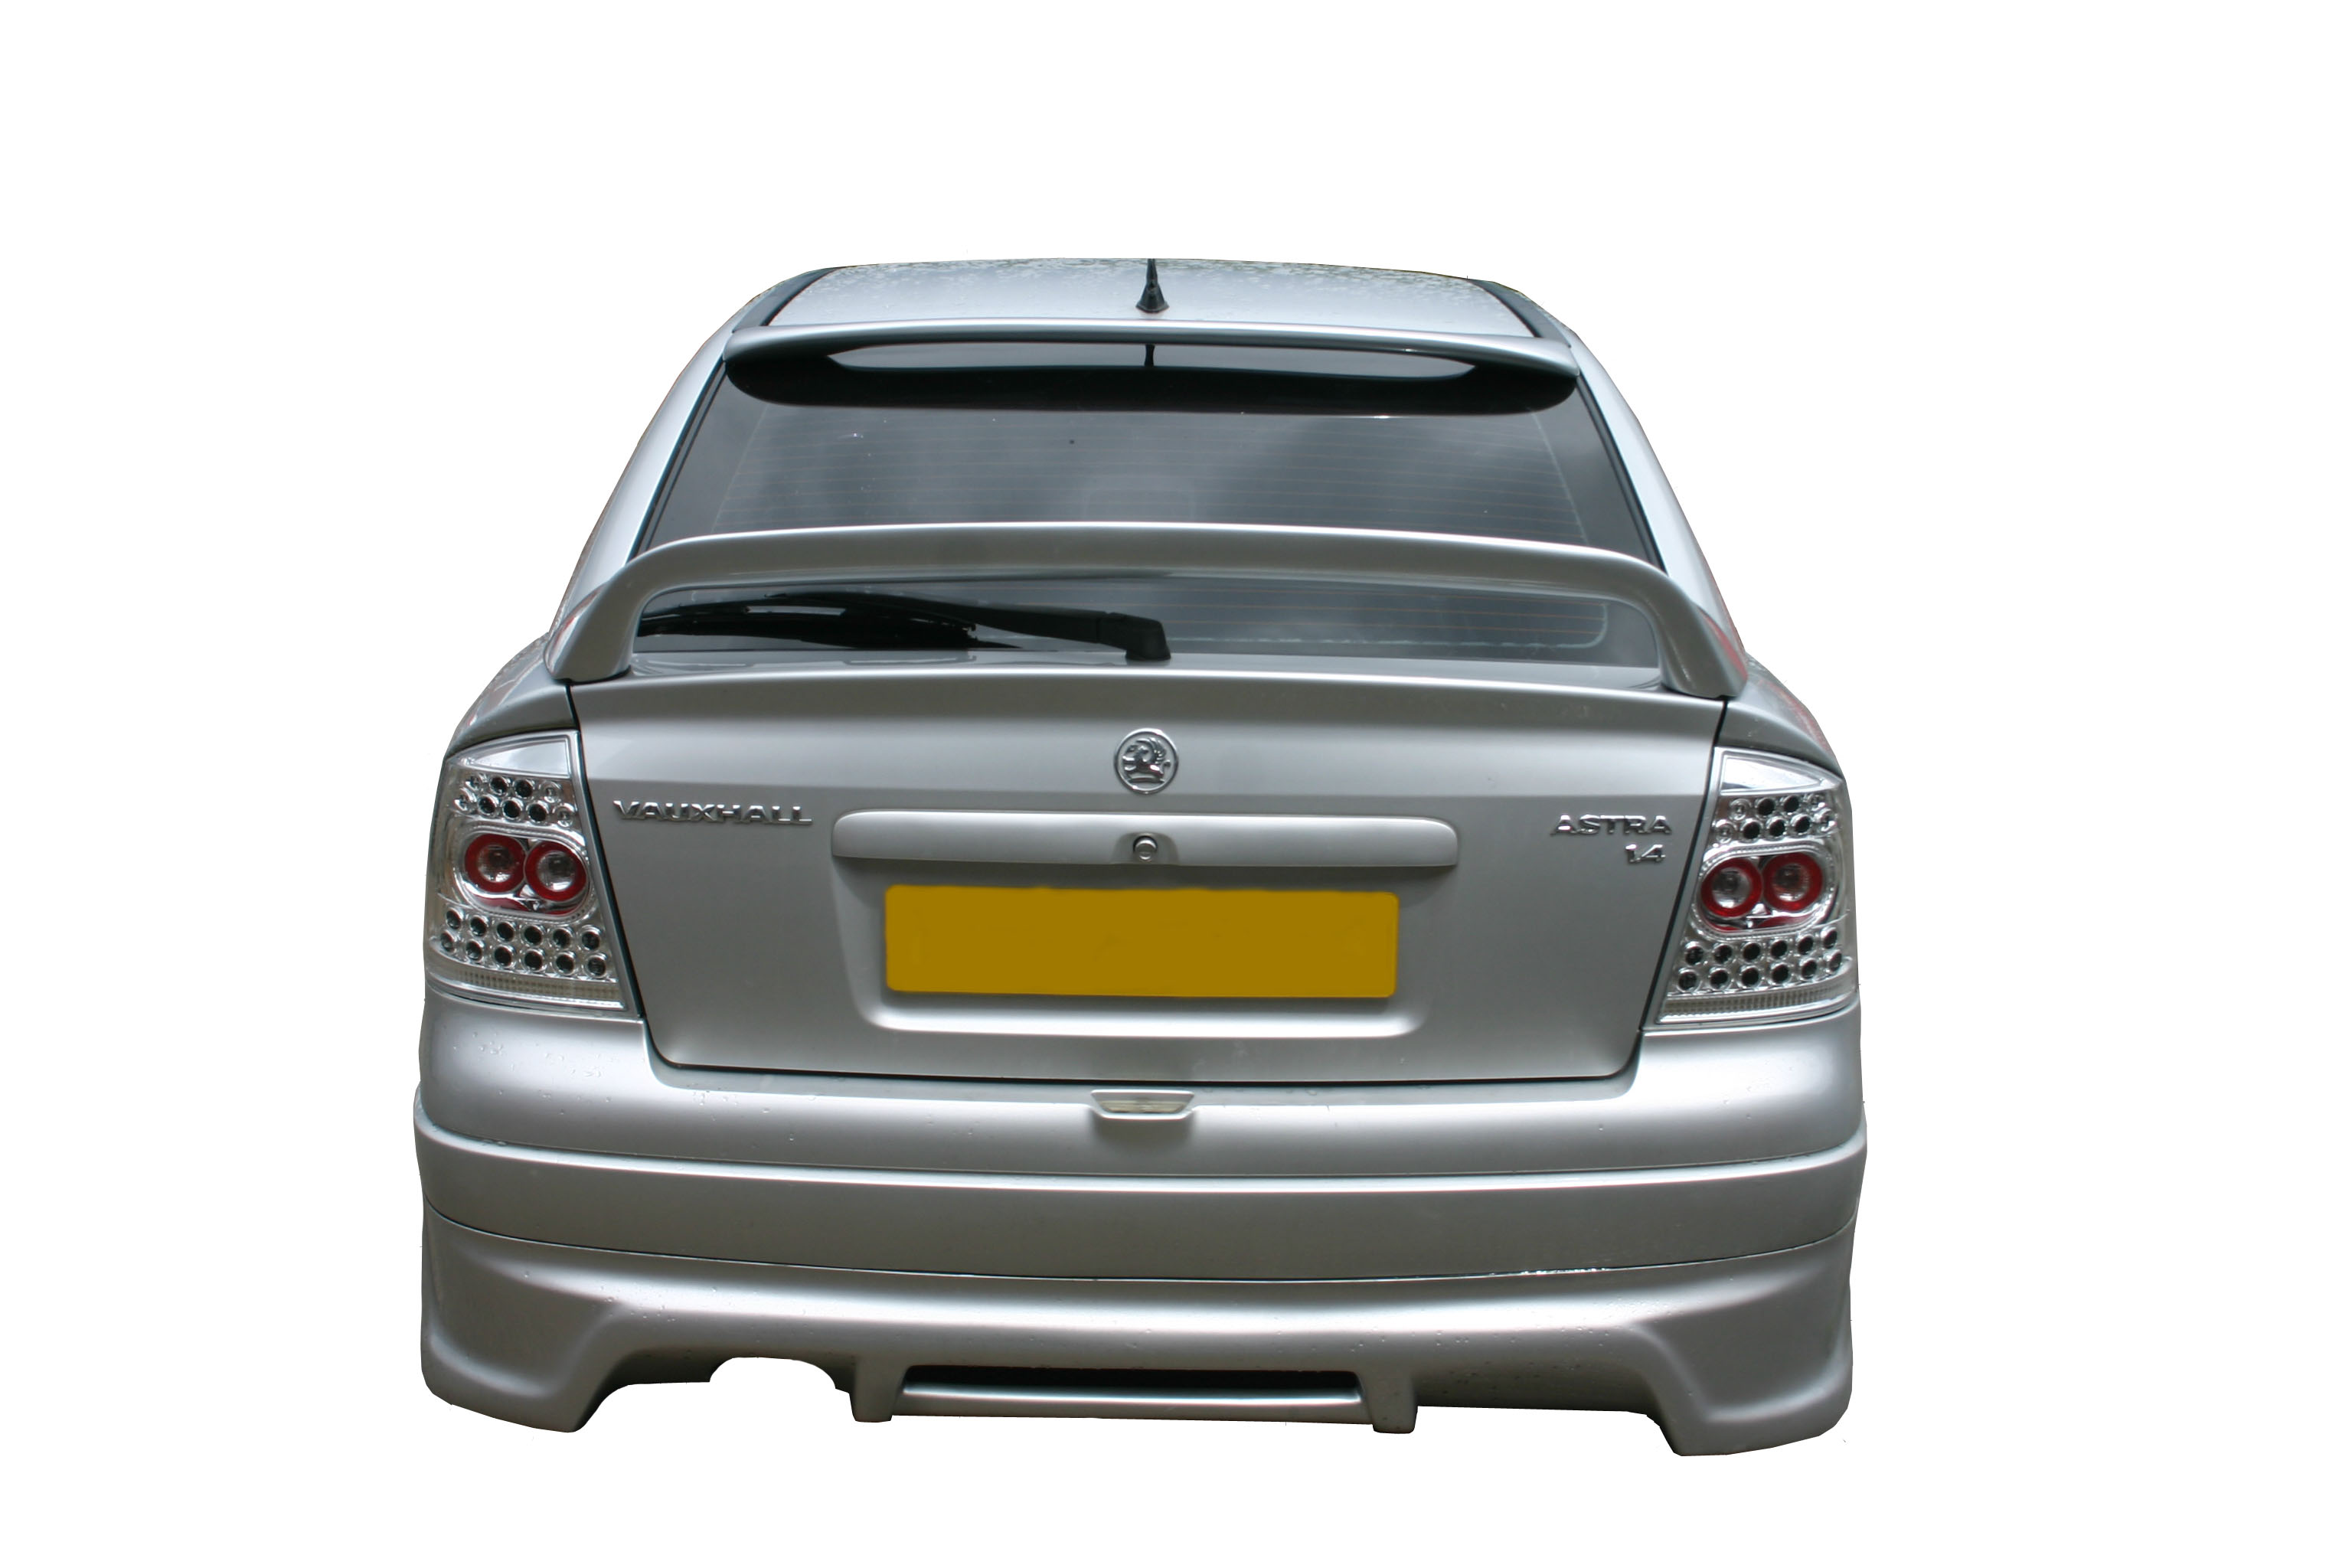 vauxhall astra g mk4 gsi boot spoiler. Black Bedroom Furniture Sets. Home Design Ideas